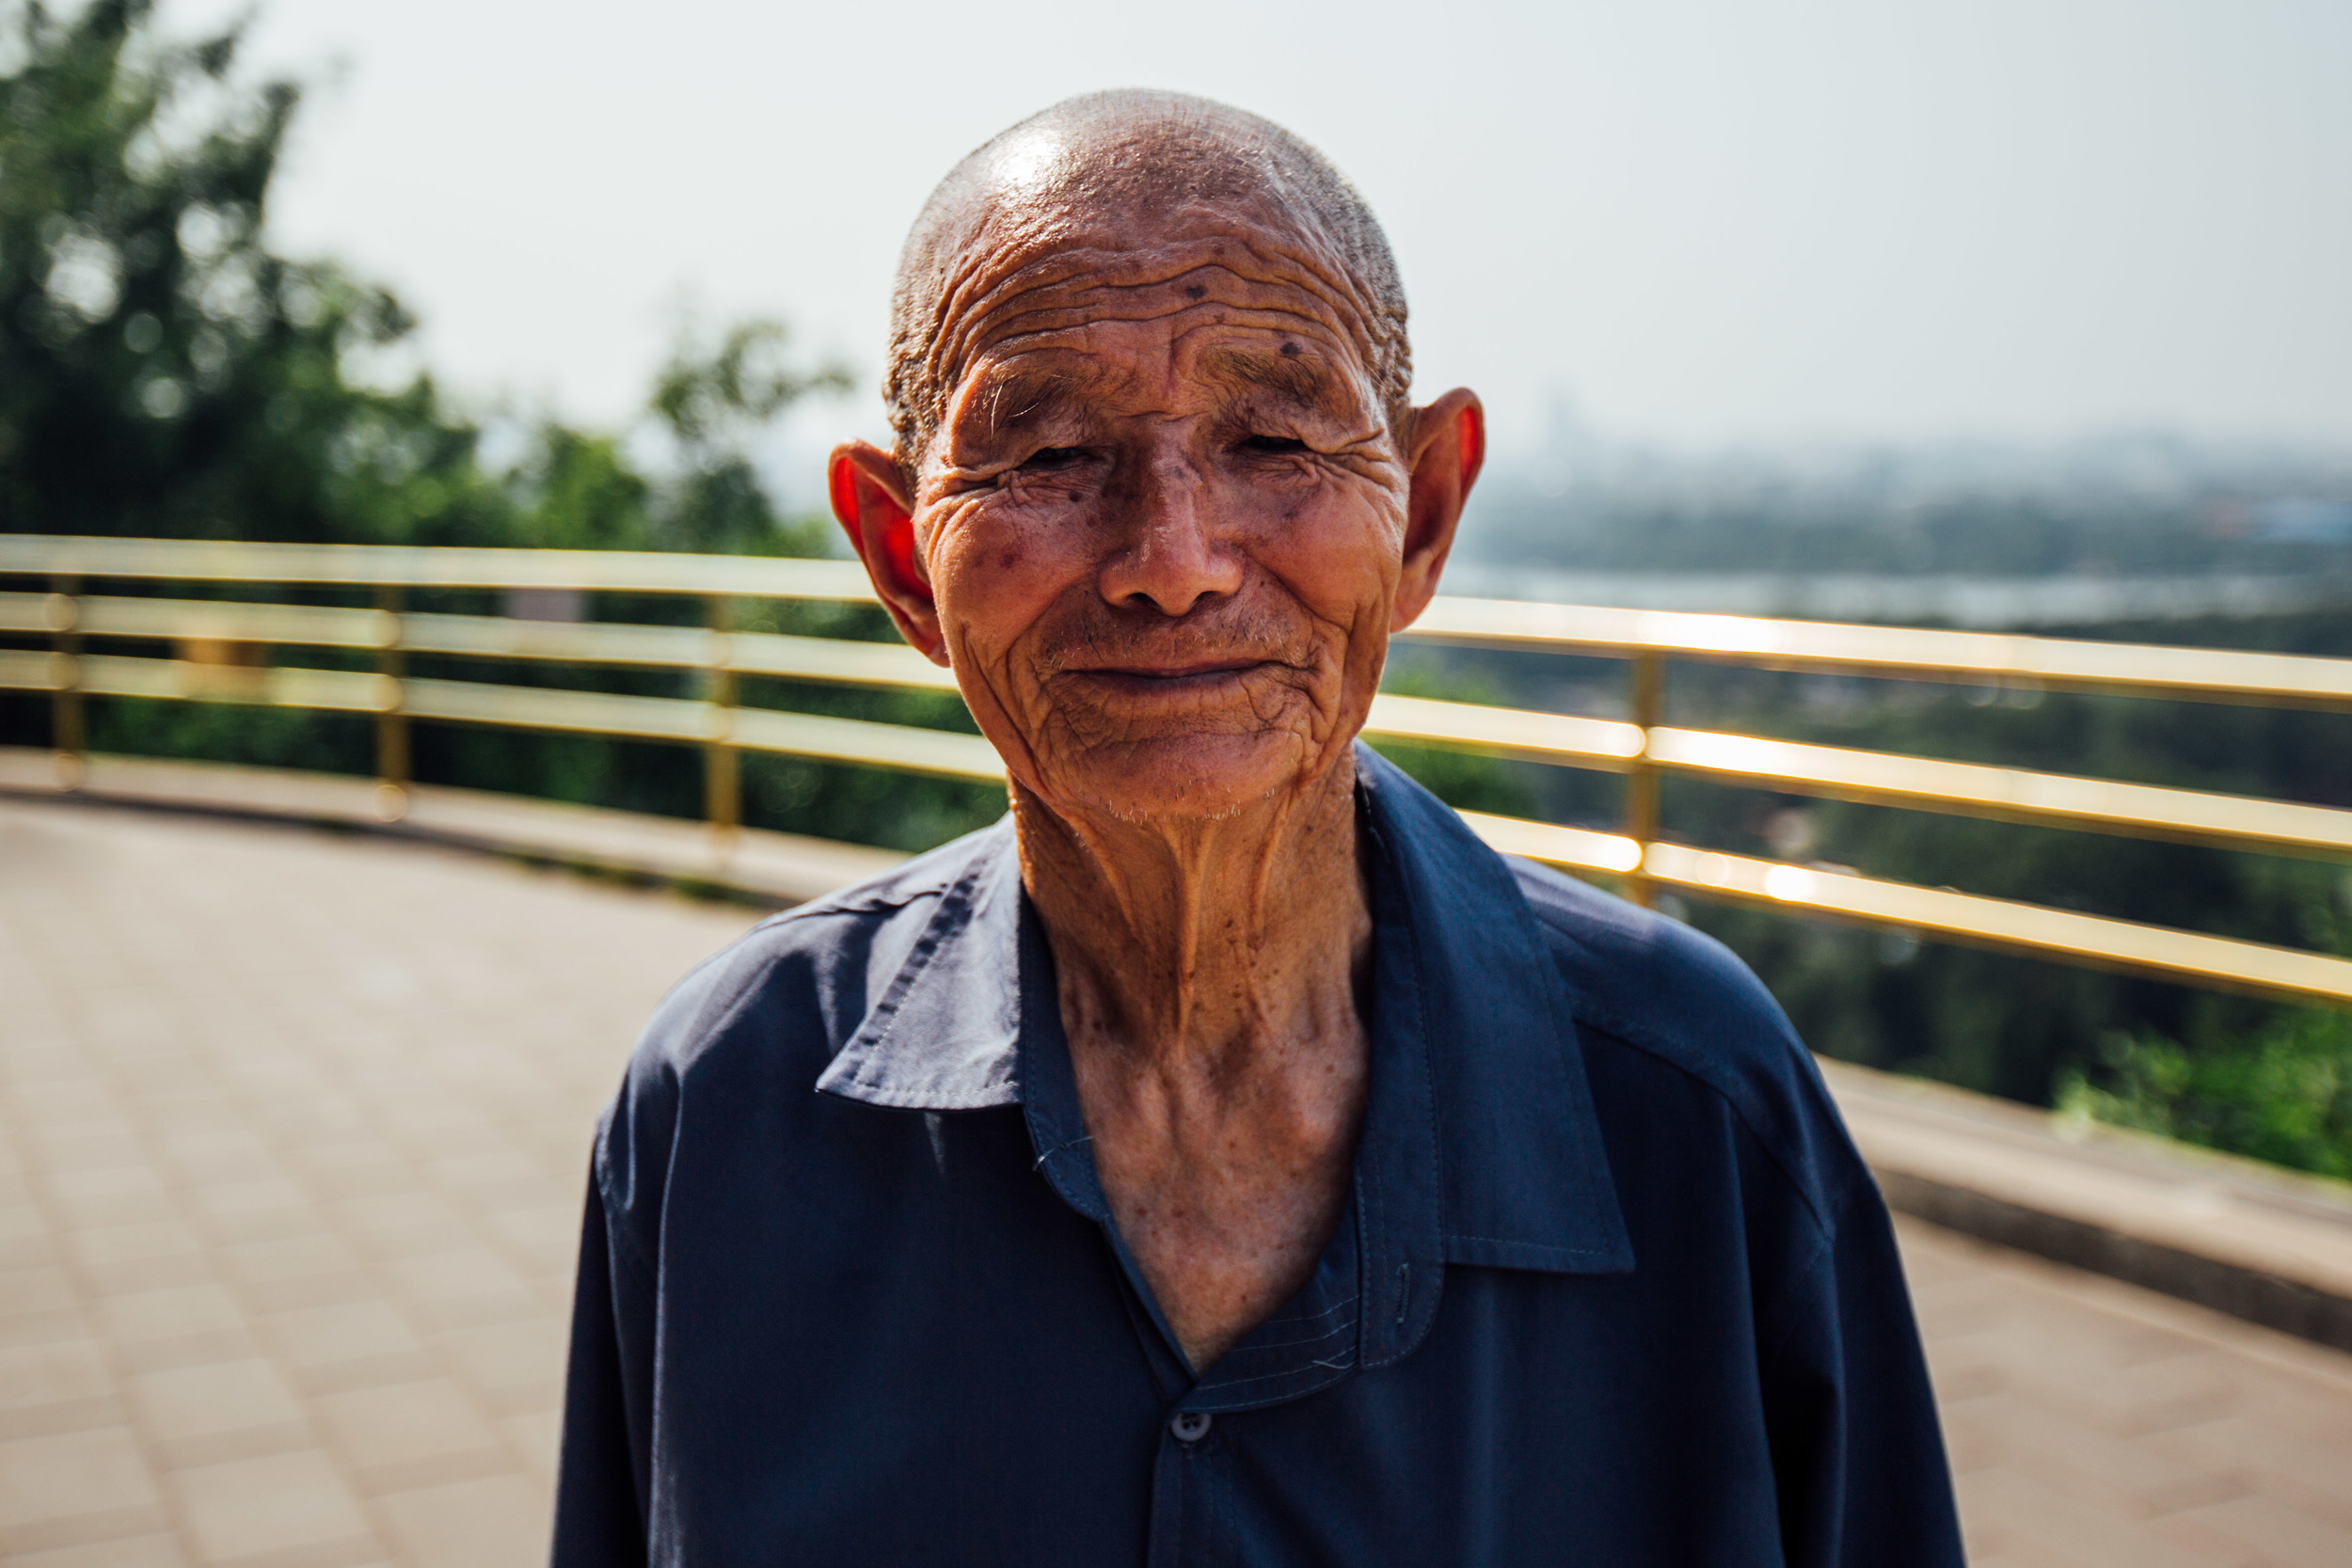 The cutest old man I've found